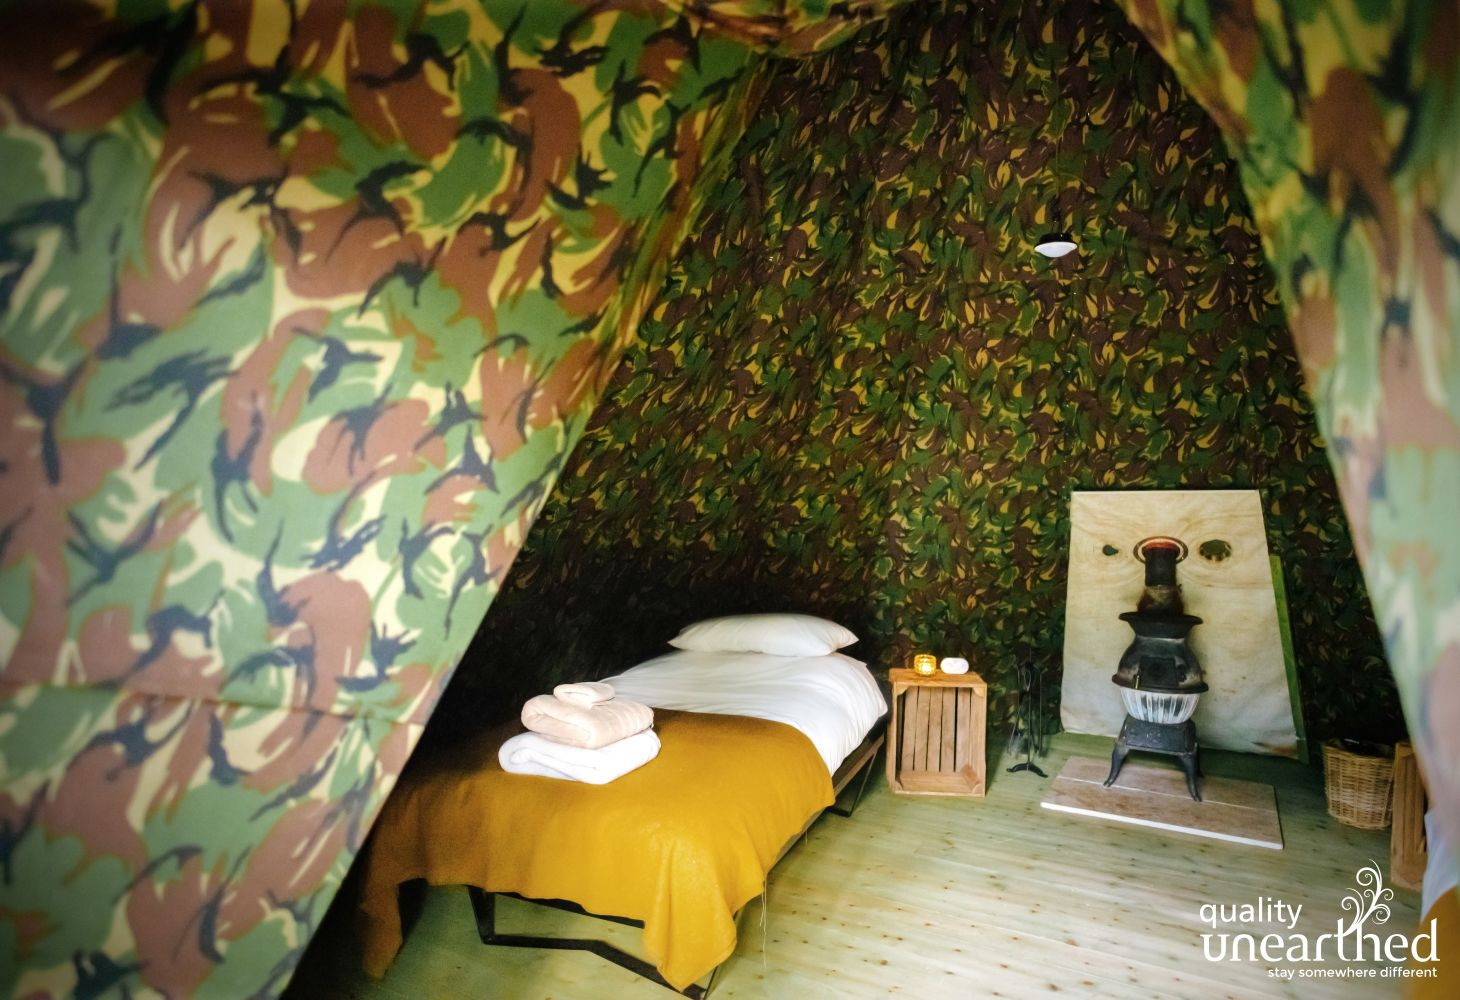 The Officer's Hideaway in Herefordshire